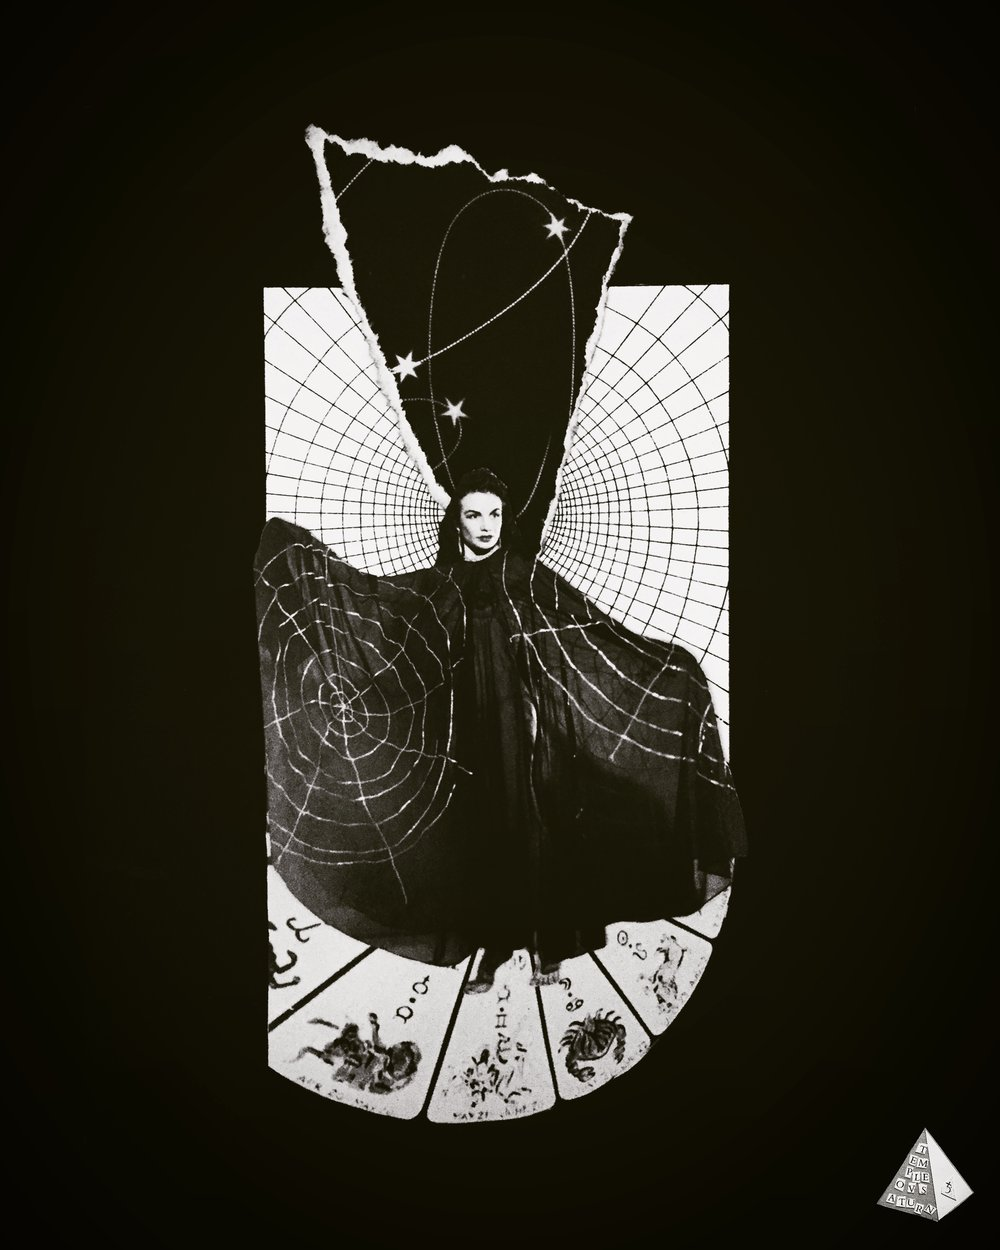 Stars Aligned, Web Spun by Joan Pope (temple ov saturn)